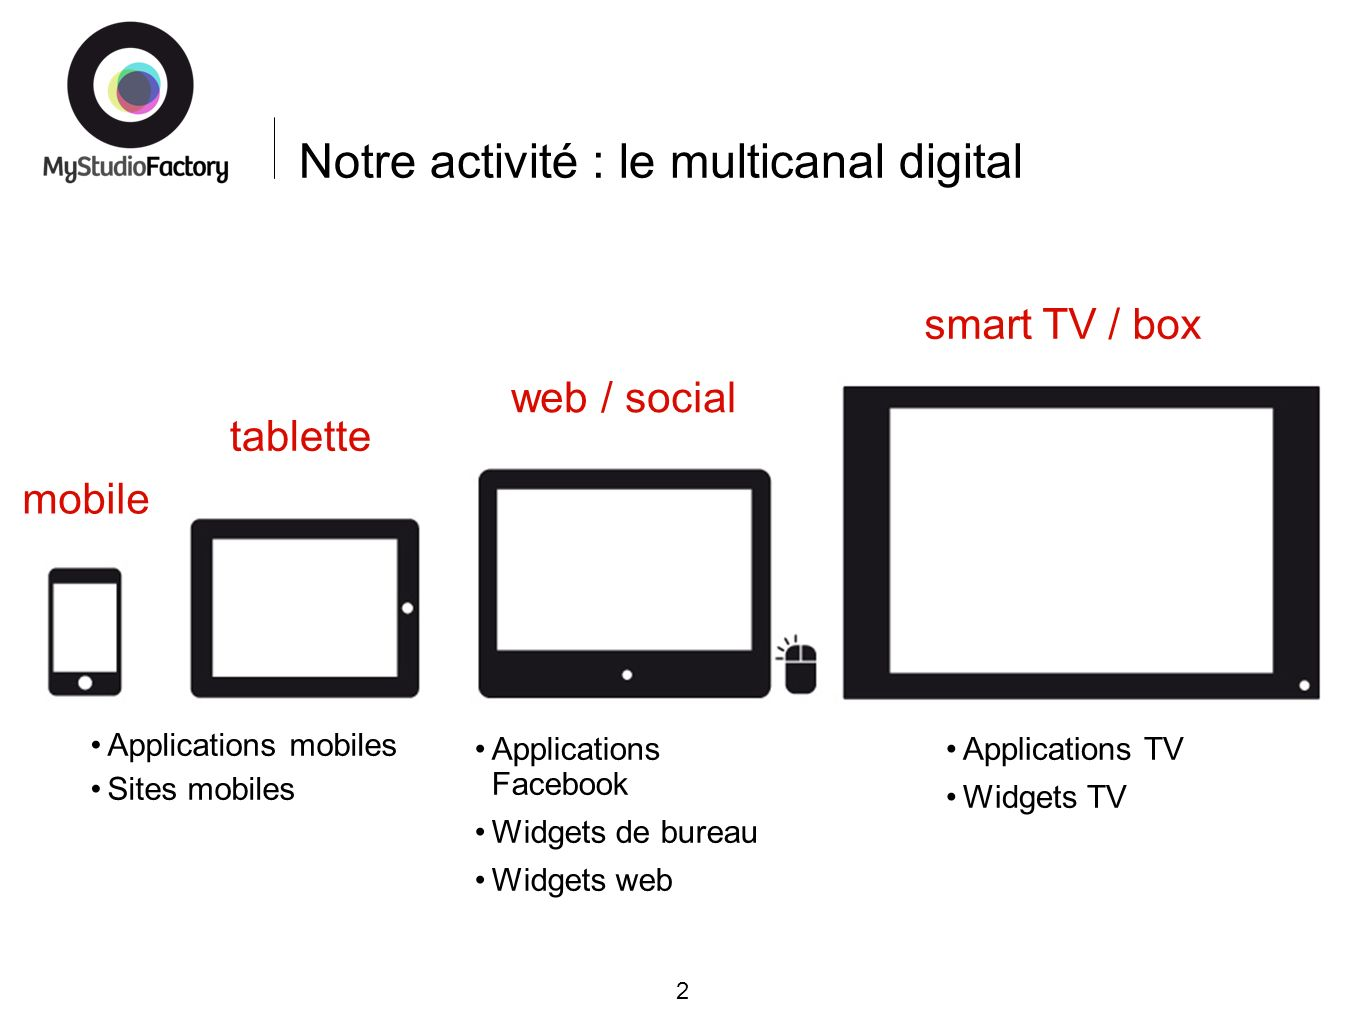 Notre activité : le multicanal digital 2 Applications TV Widgets TV Applications Facebook Widgets de bureau Widgets web Applications mobiles Sites mobiles mobile tablette web / social smart TV / box